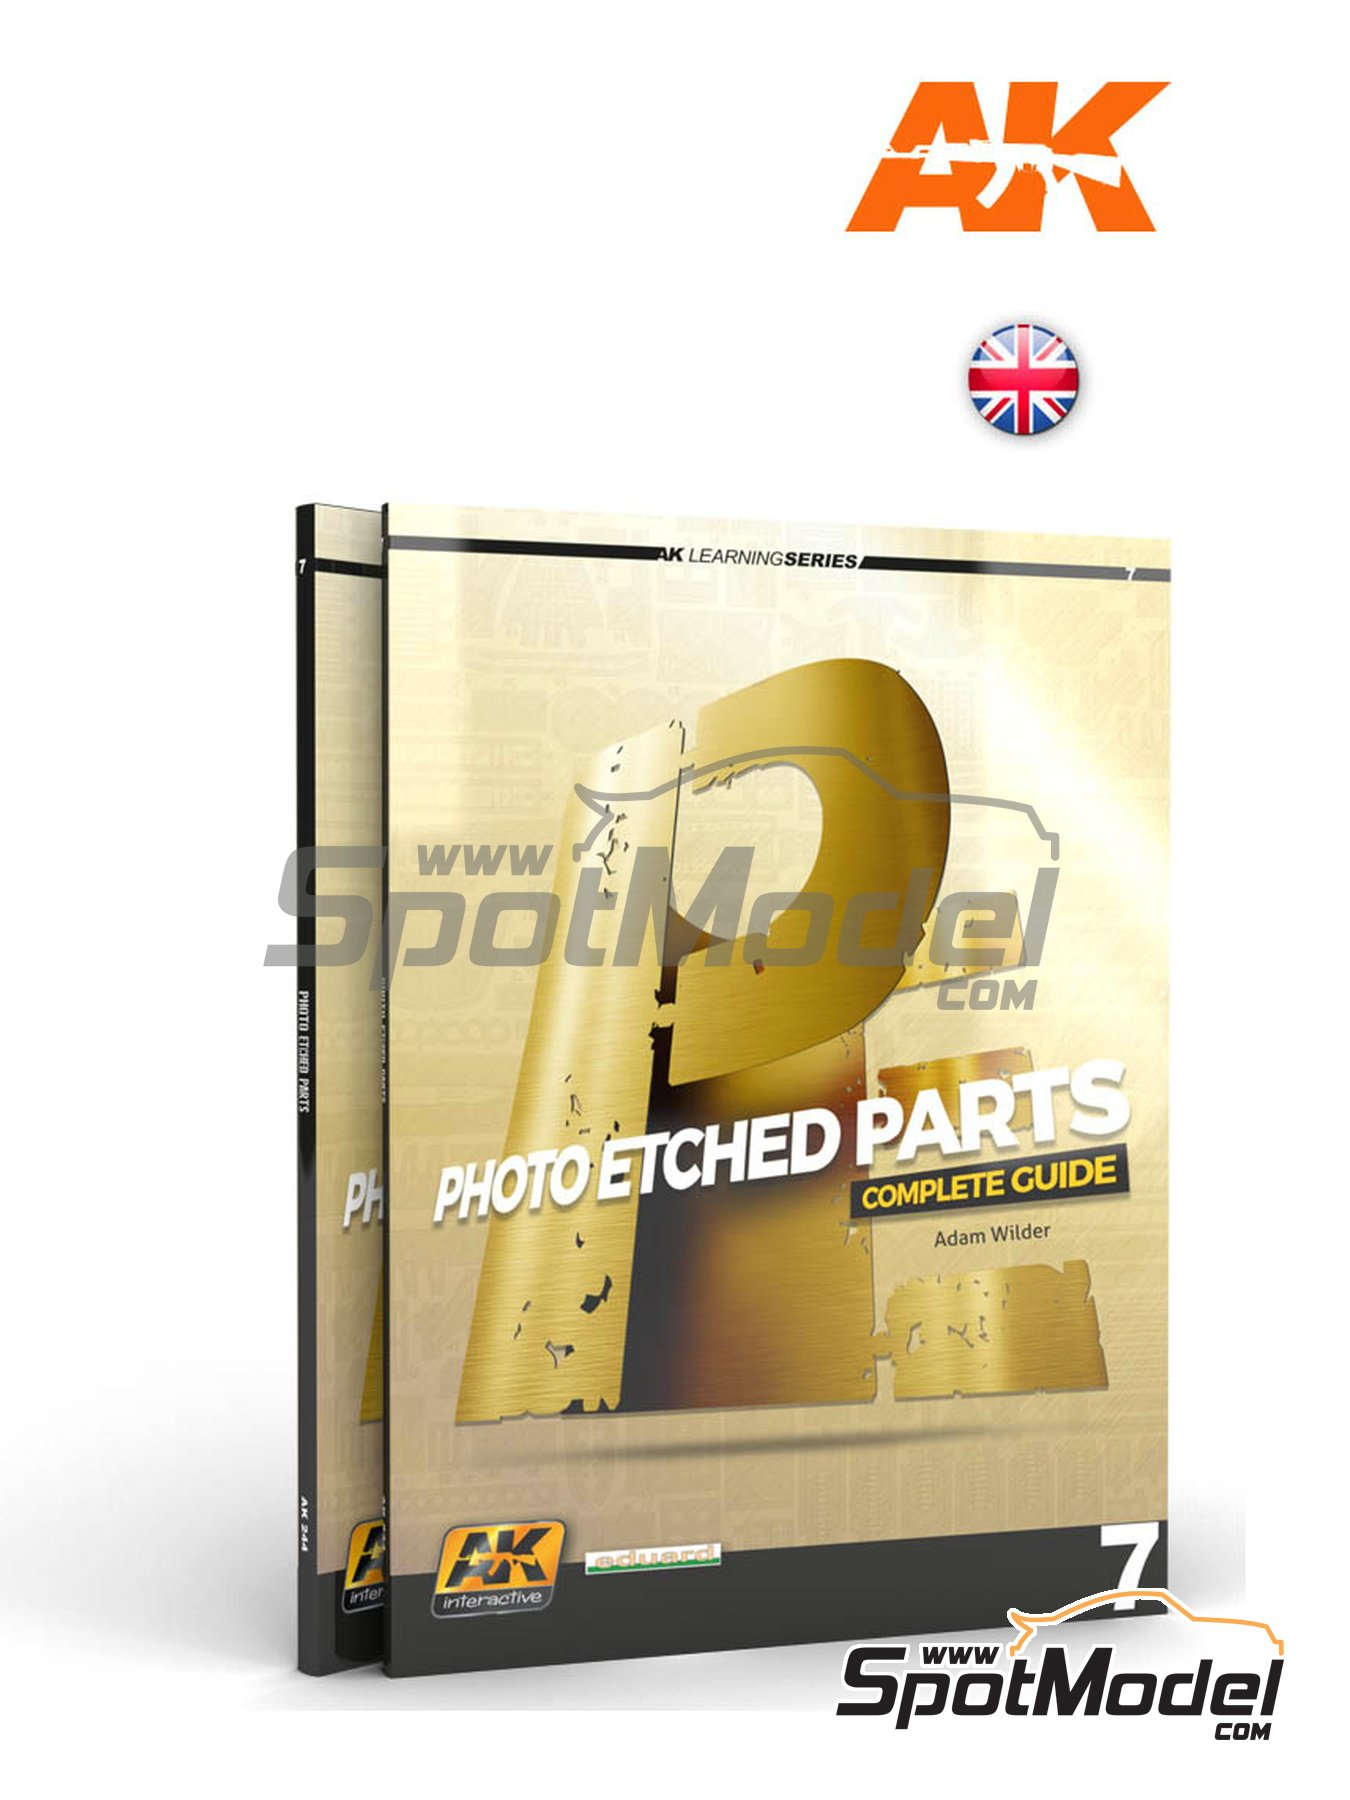 Photoetch parts - AK Learning series number 7 | Book manufactured by AK Interactive (ref. AK-244) image